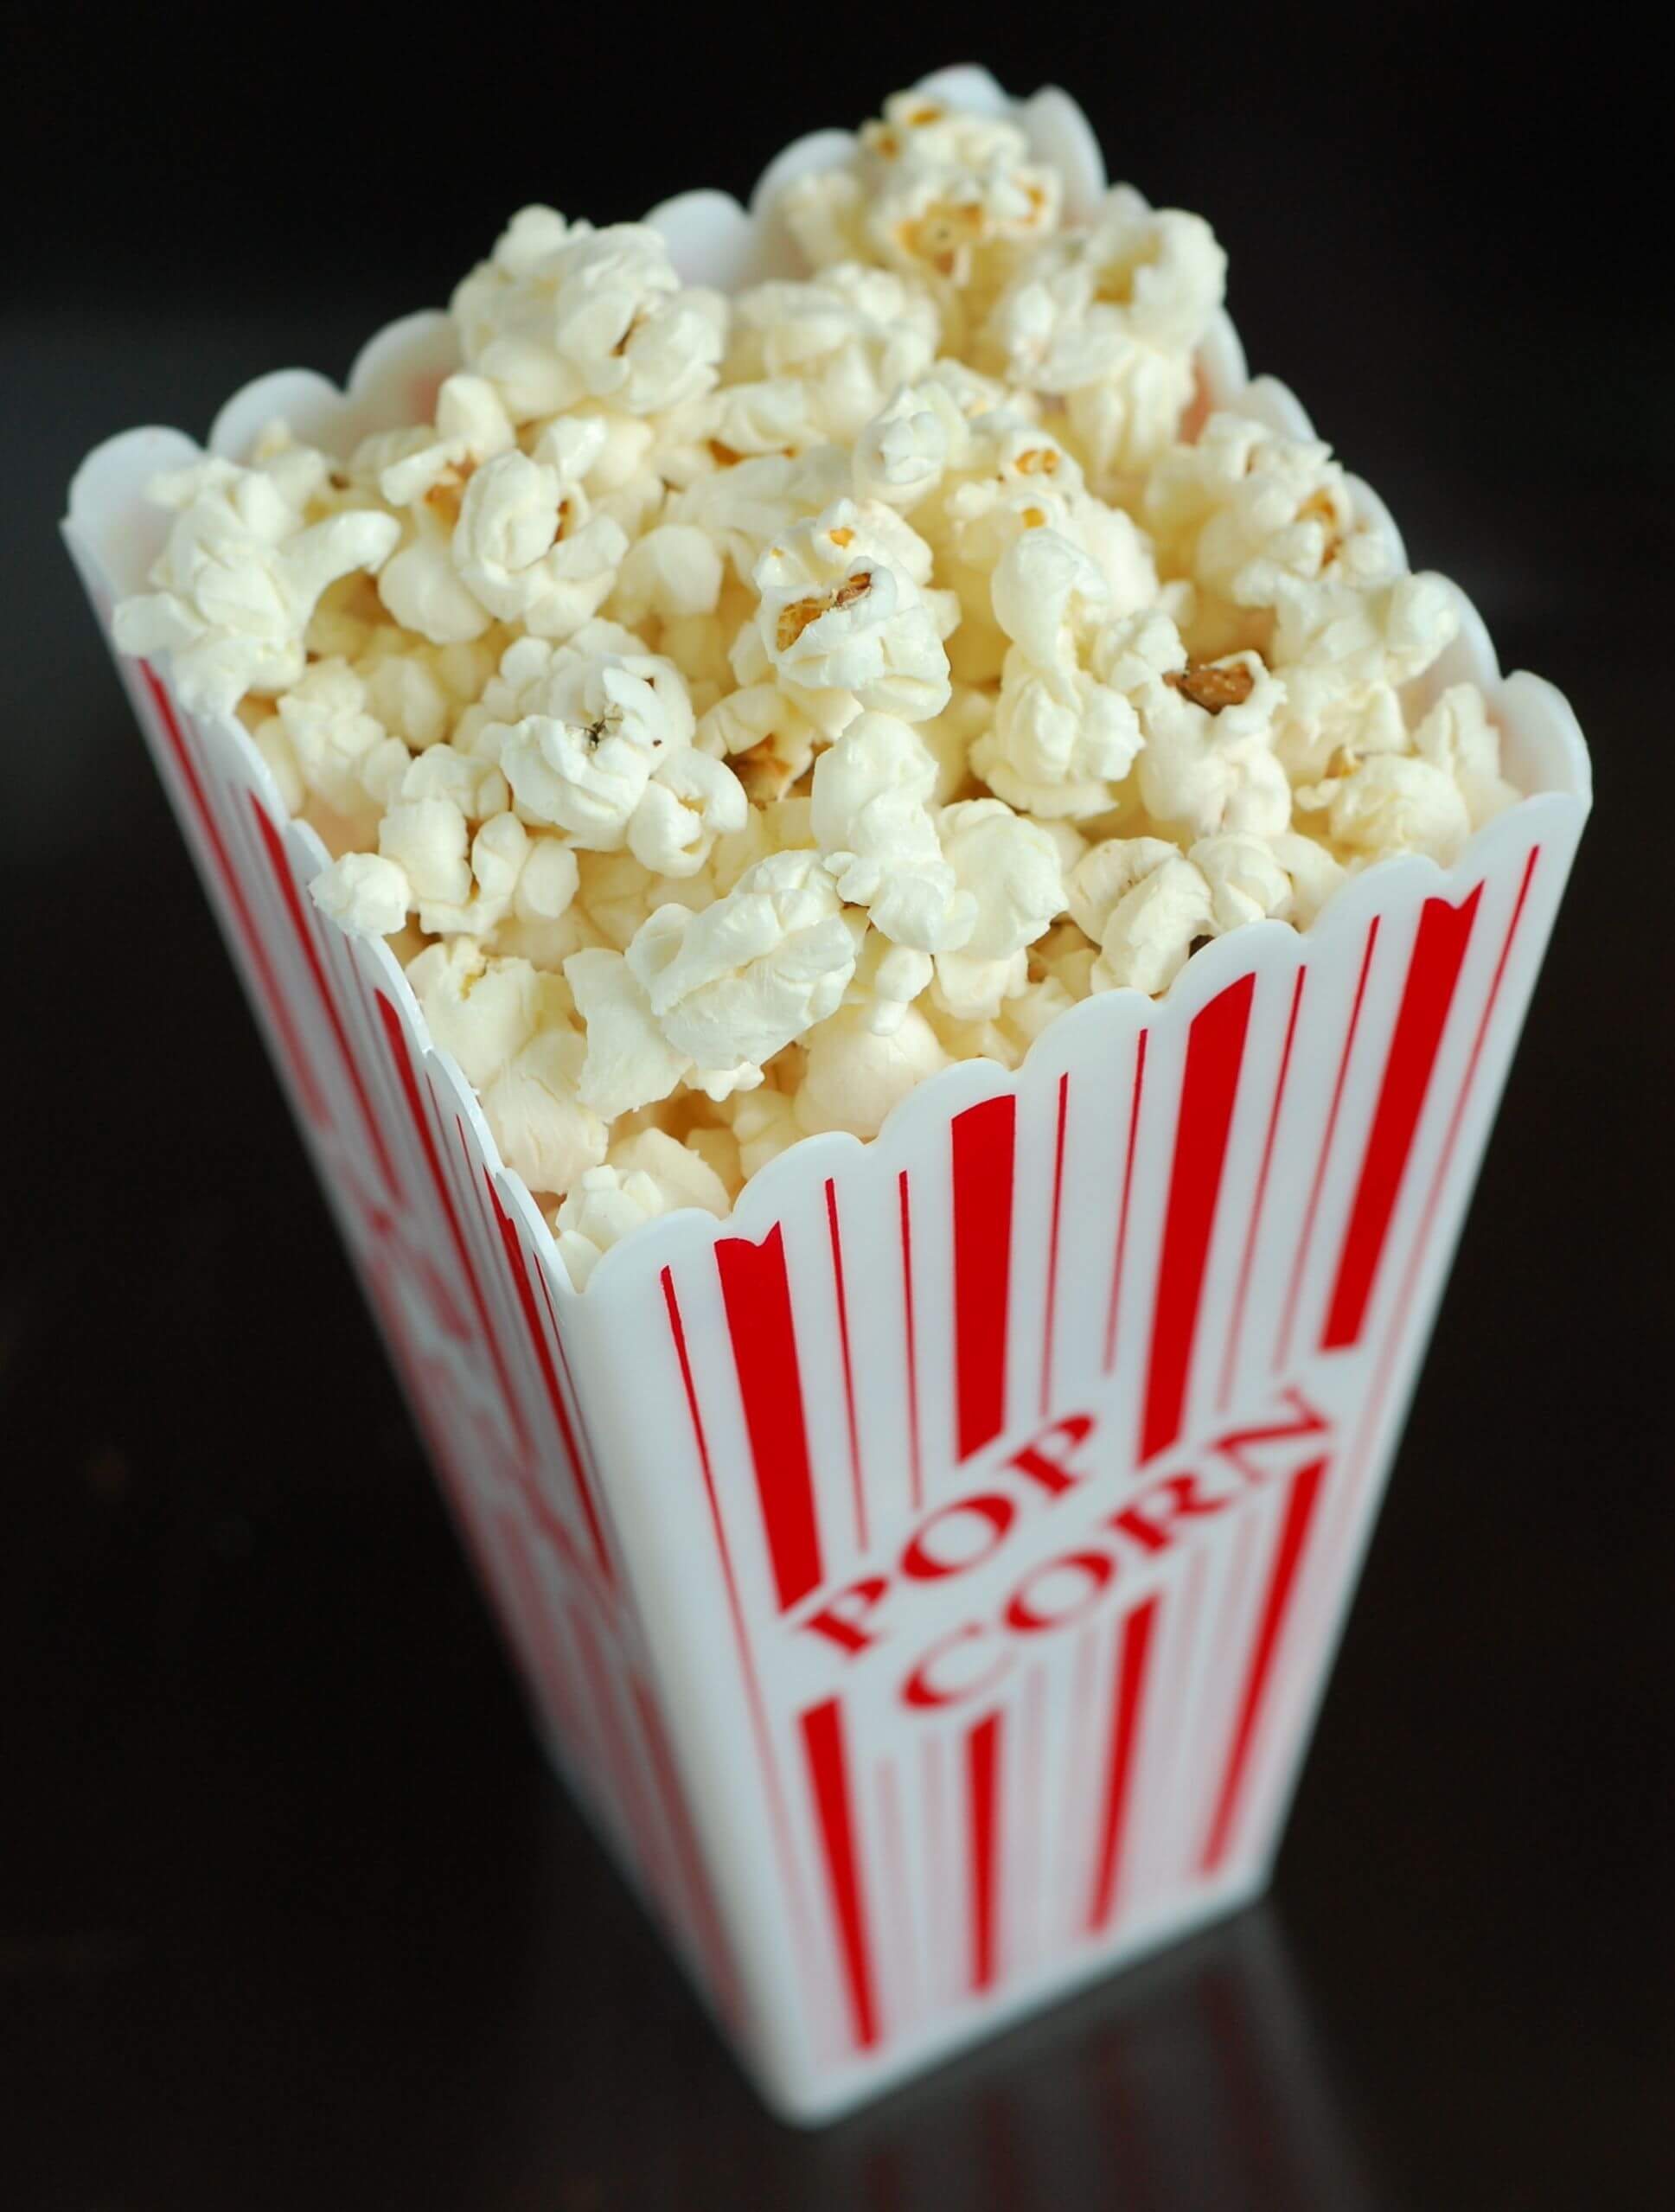 Image result for popcorn picture